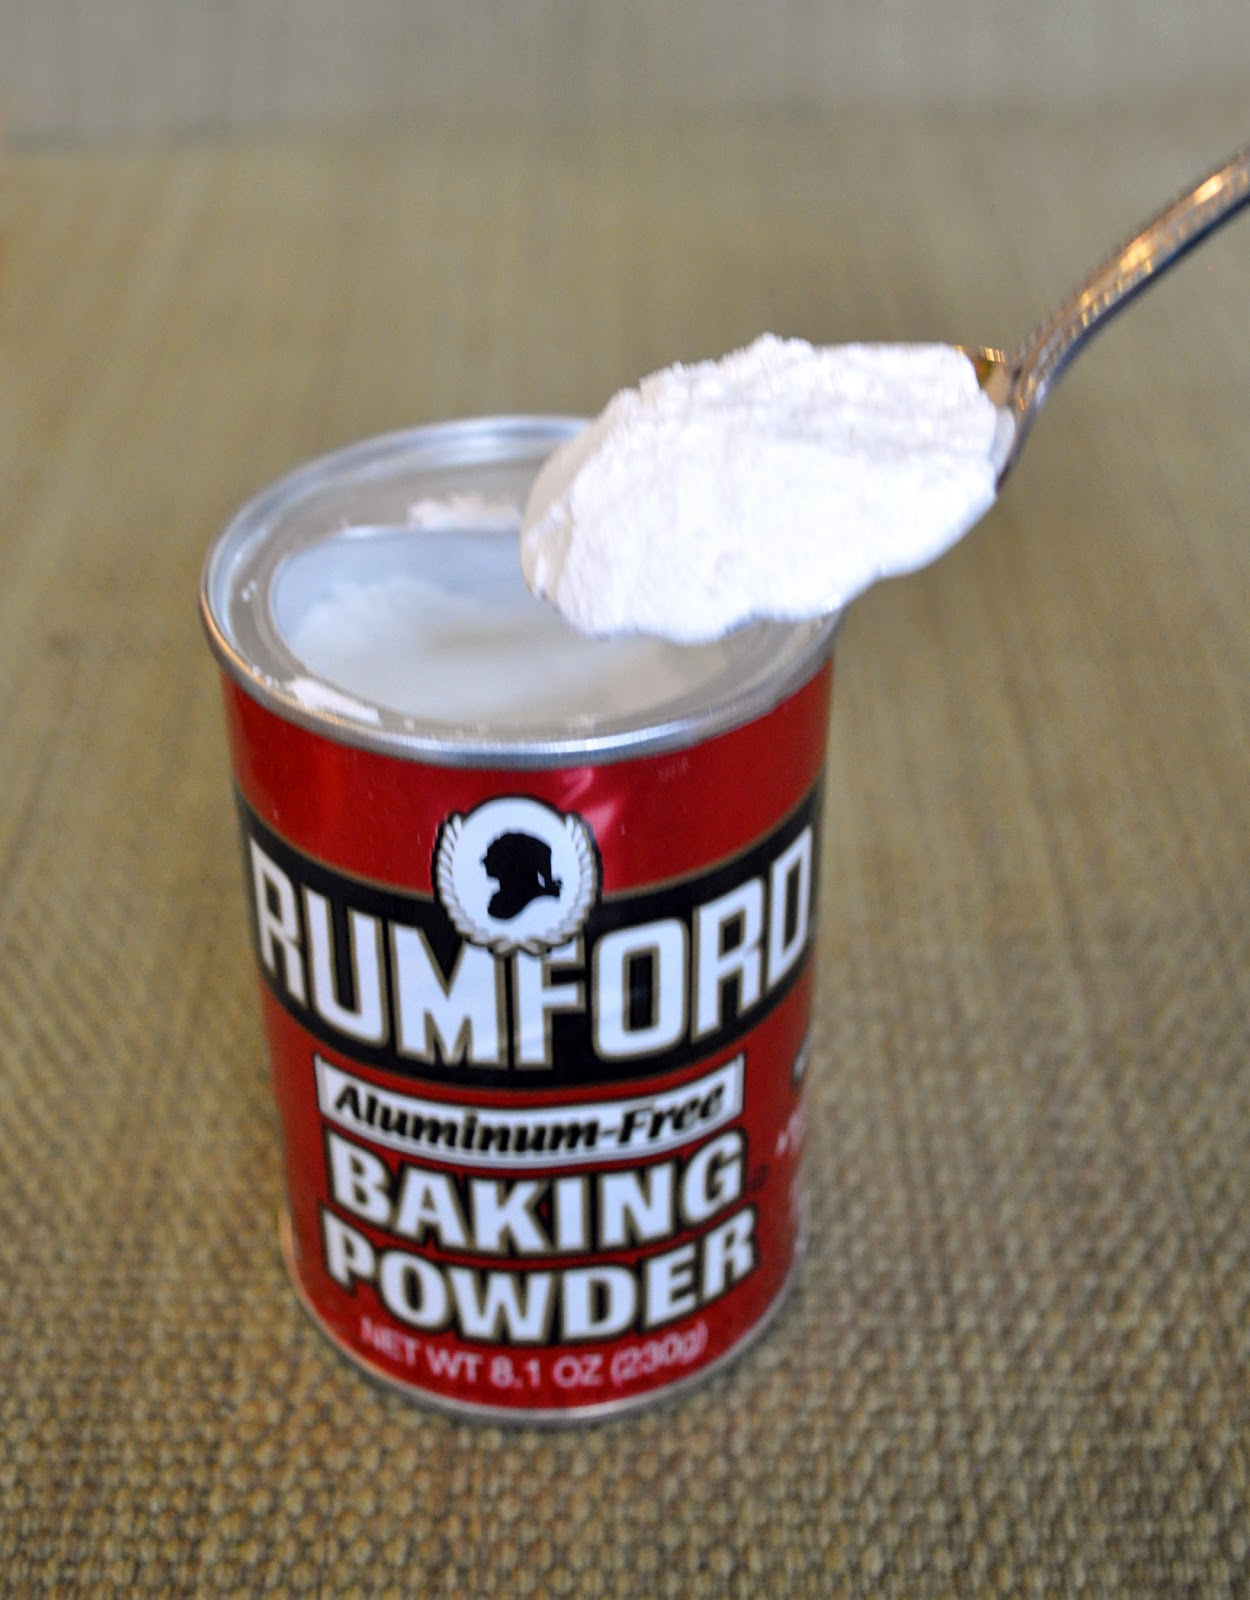 Our Sweet Lemons Is Your Baking Powder Aluminum Free